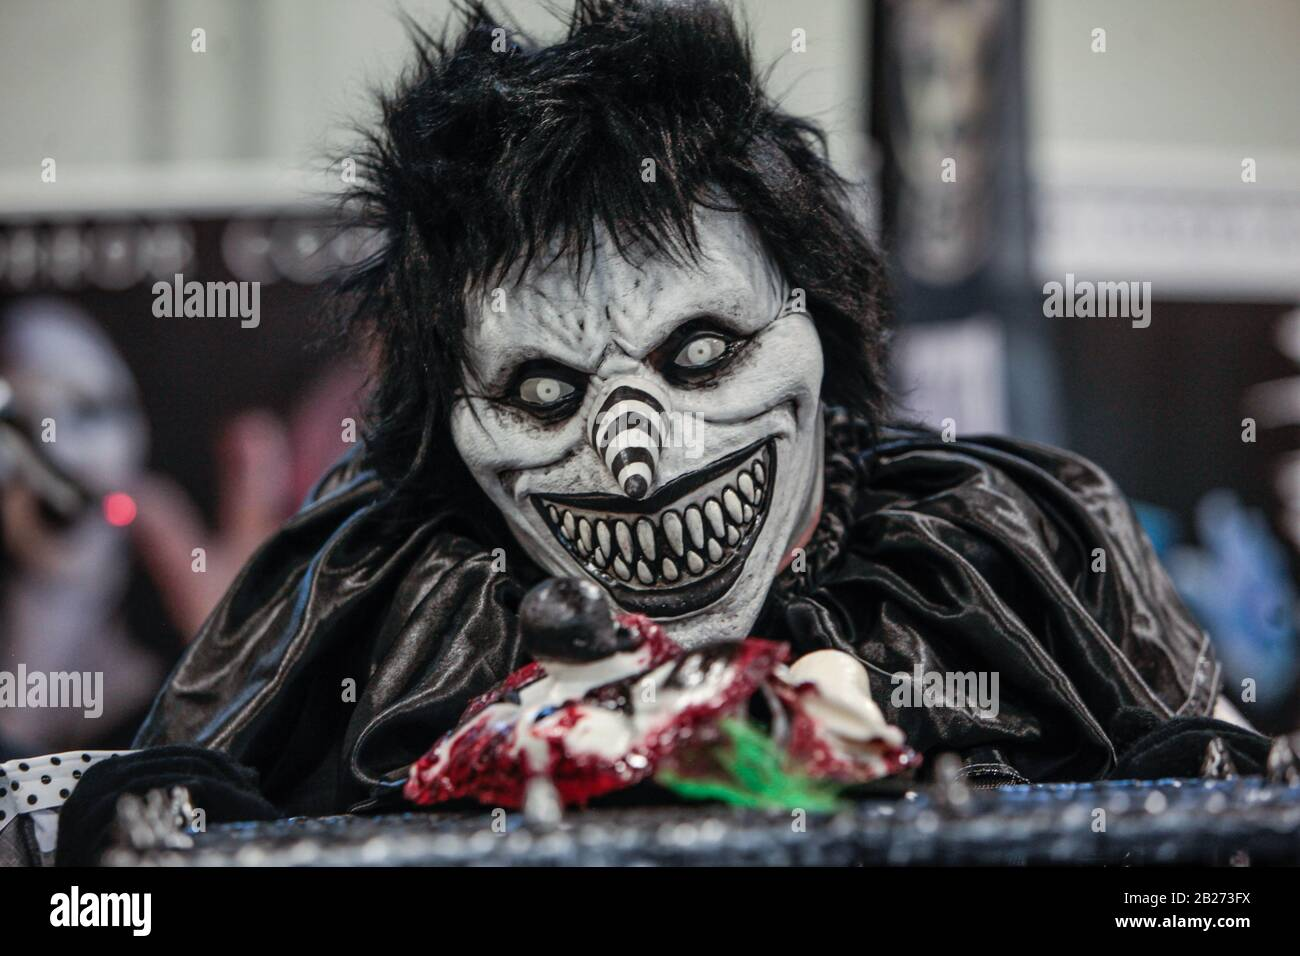 Olympia Fils Halloween 2020 Titles Of Films High Resolution Stock Photography and Images   Alamy